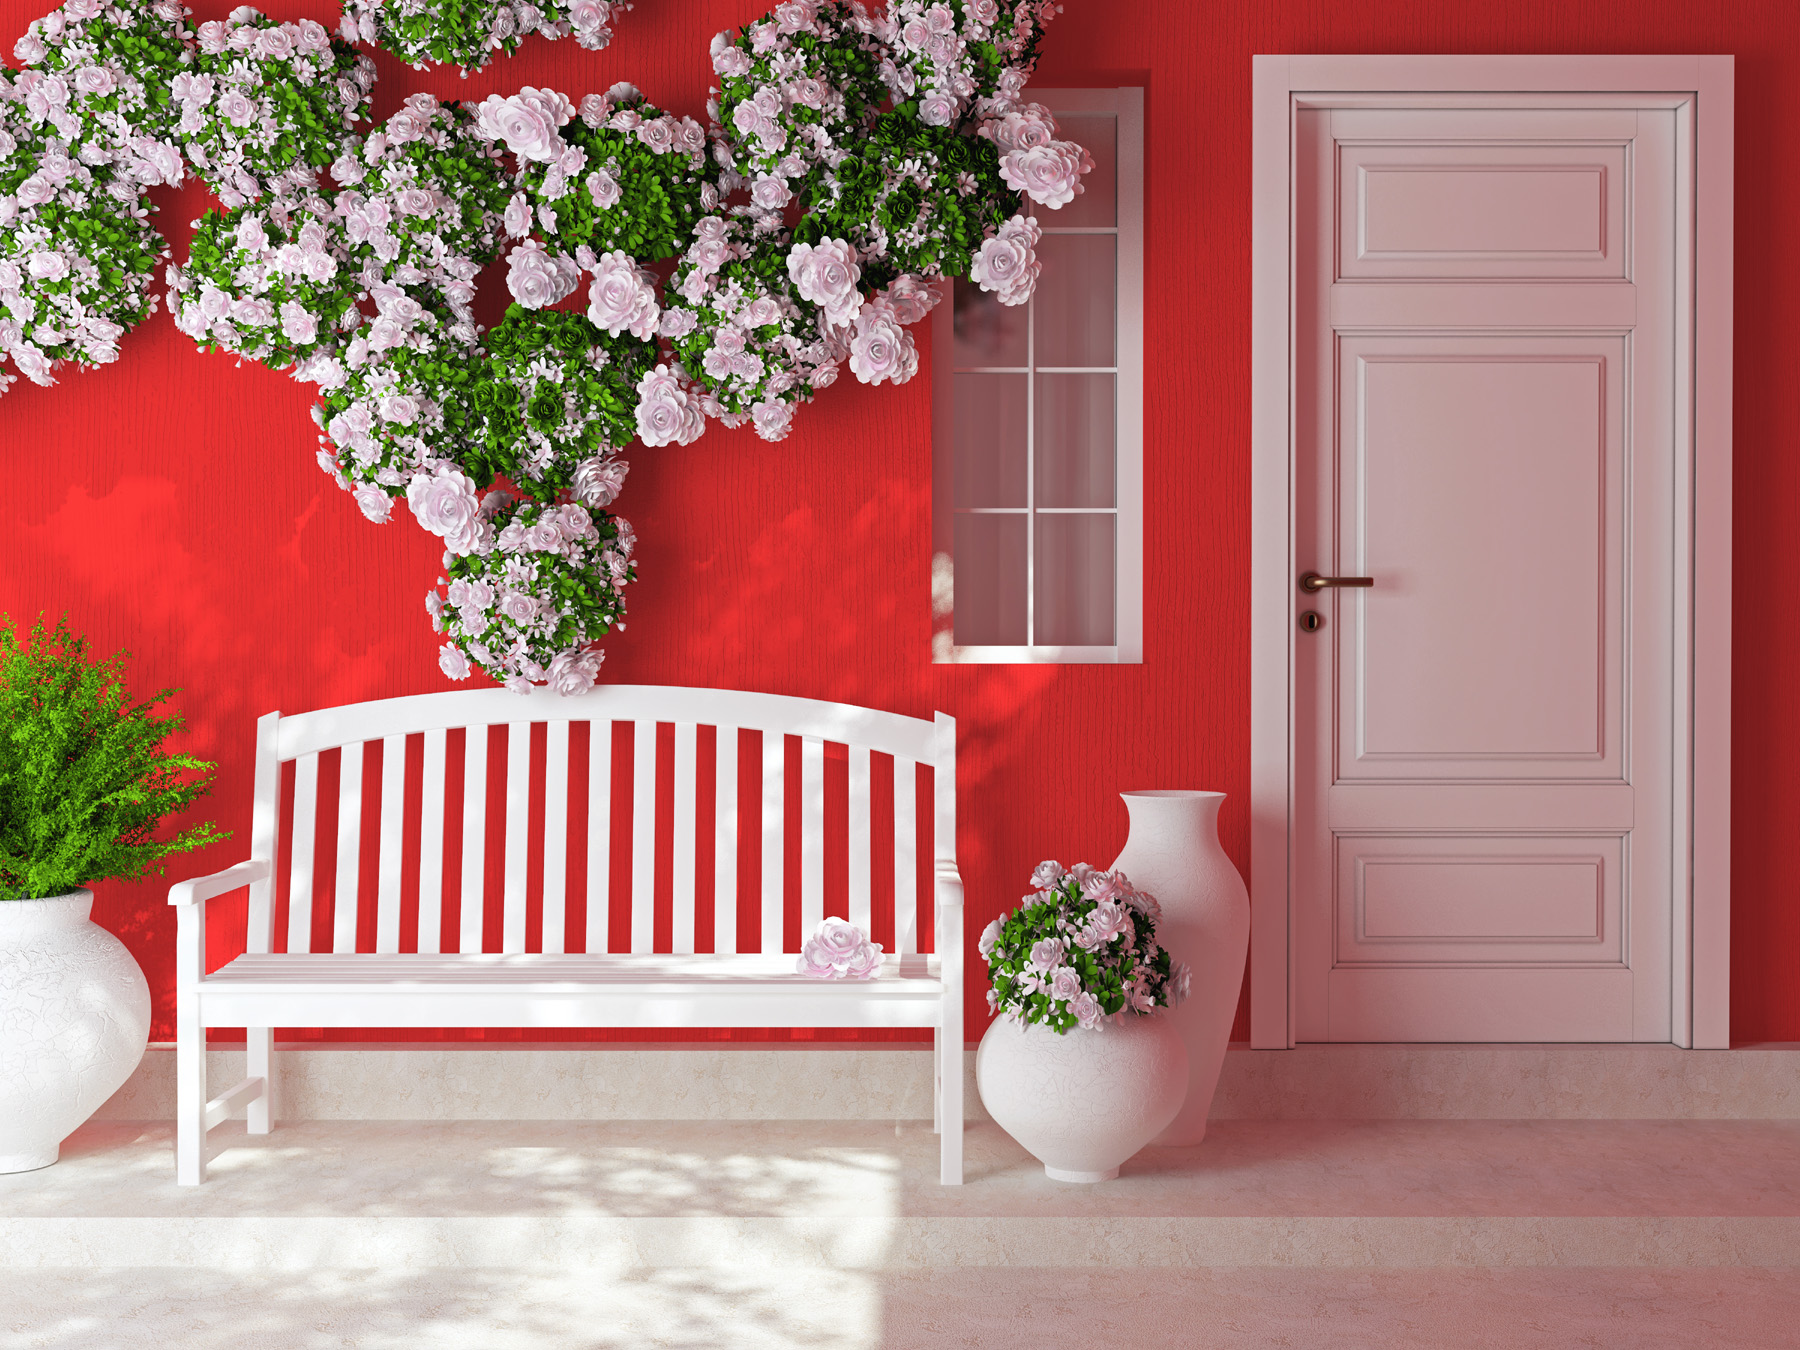 Red walls and benches and flowers outside 50950